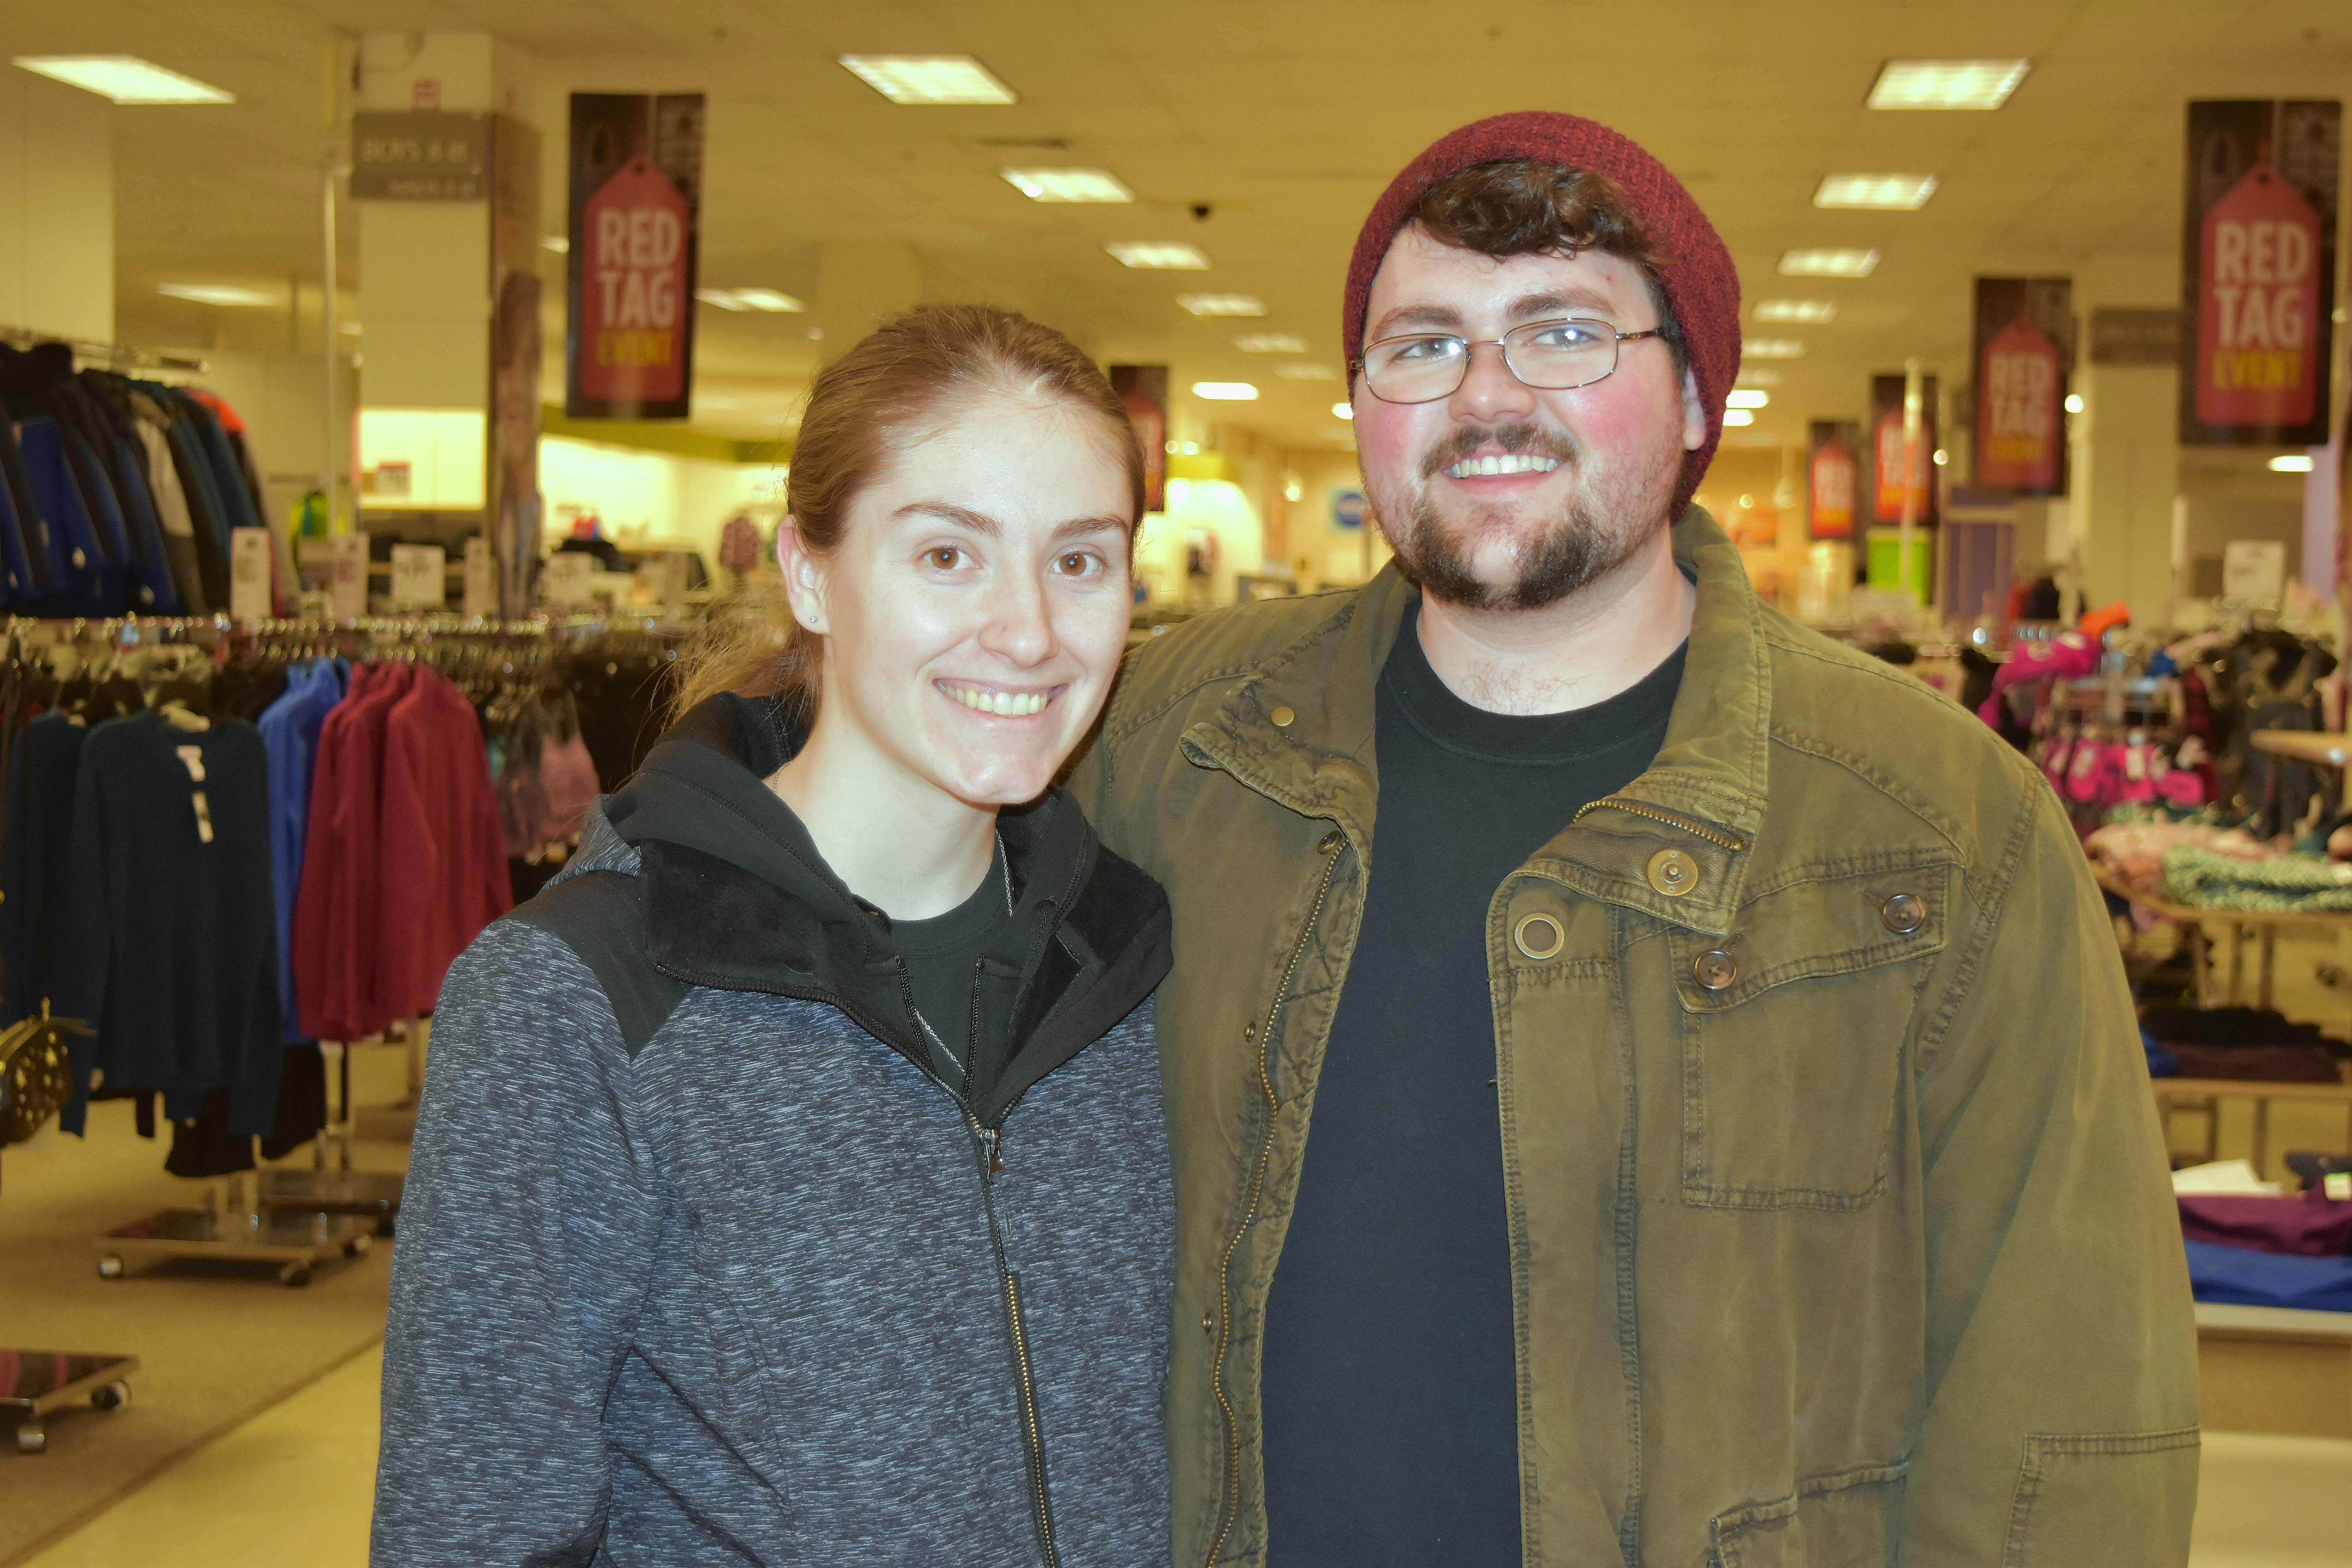 "Briana Julian of West Frankfort and Austin Erthall of Ewing doing some shopping at Sears Thursday evening. Erthall said he will definitely miss Sears. ""I'm not sure how much longer any of these stores here at the mall will stay open,"" he added."